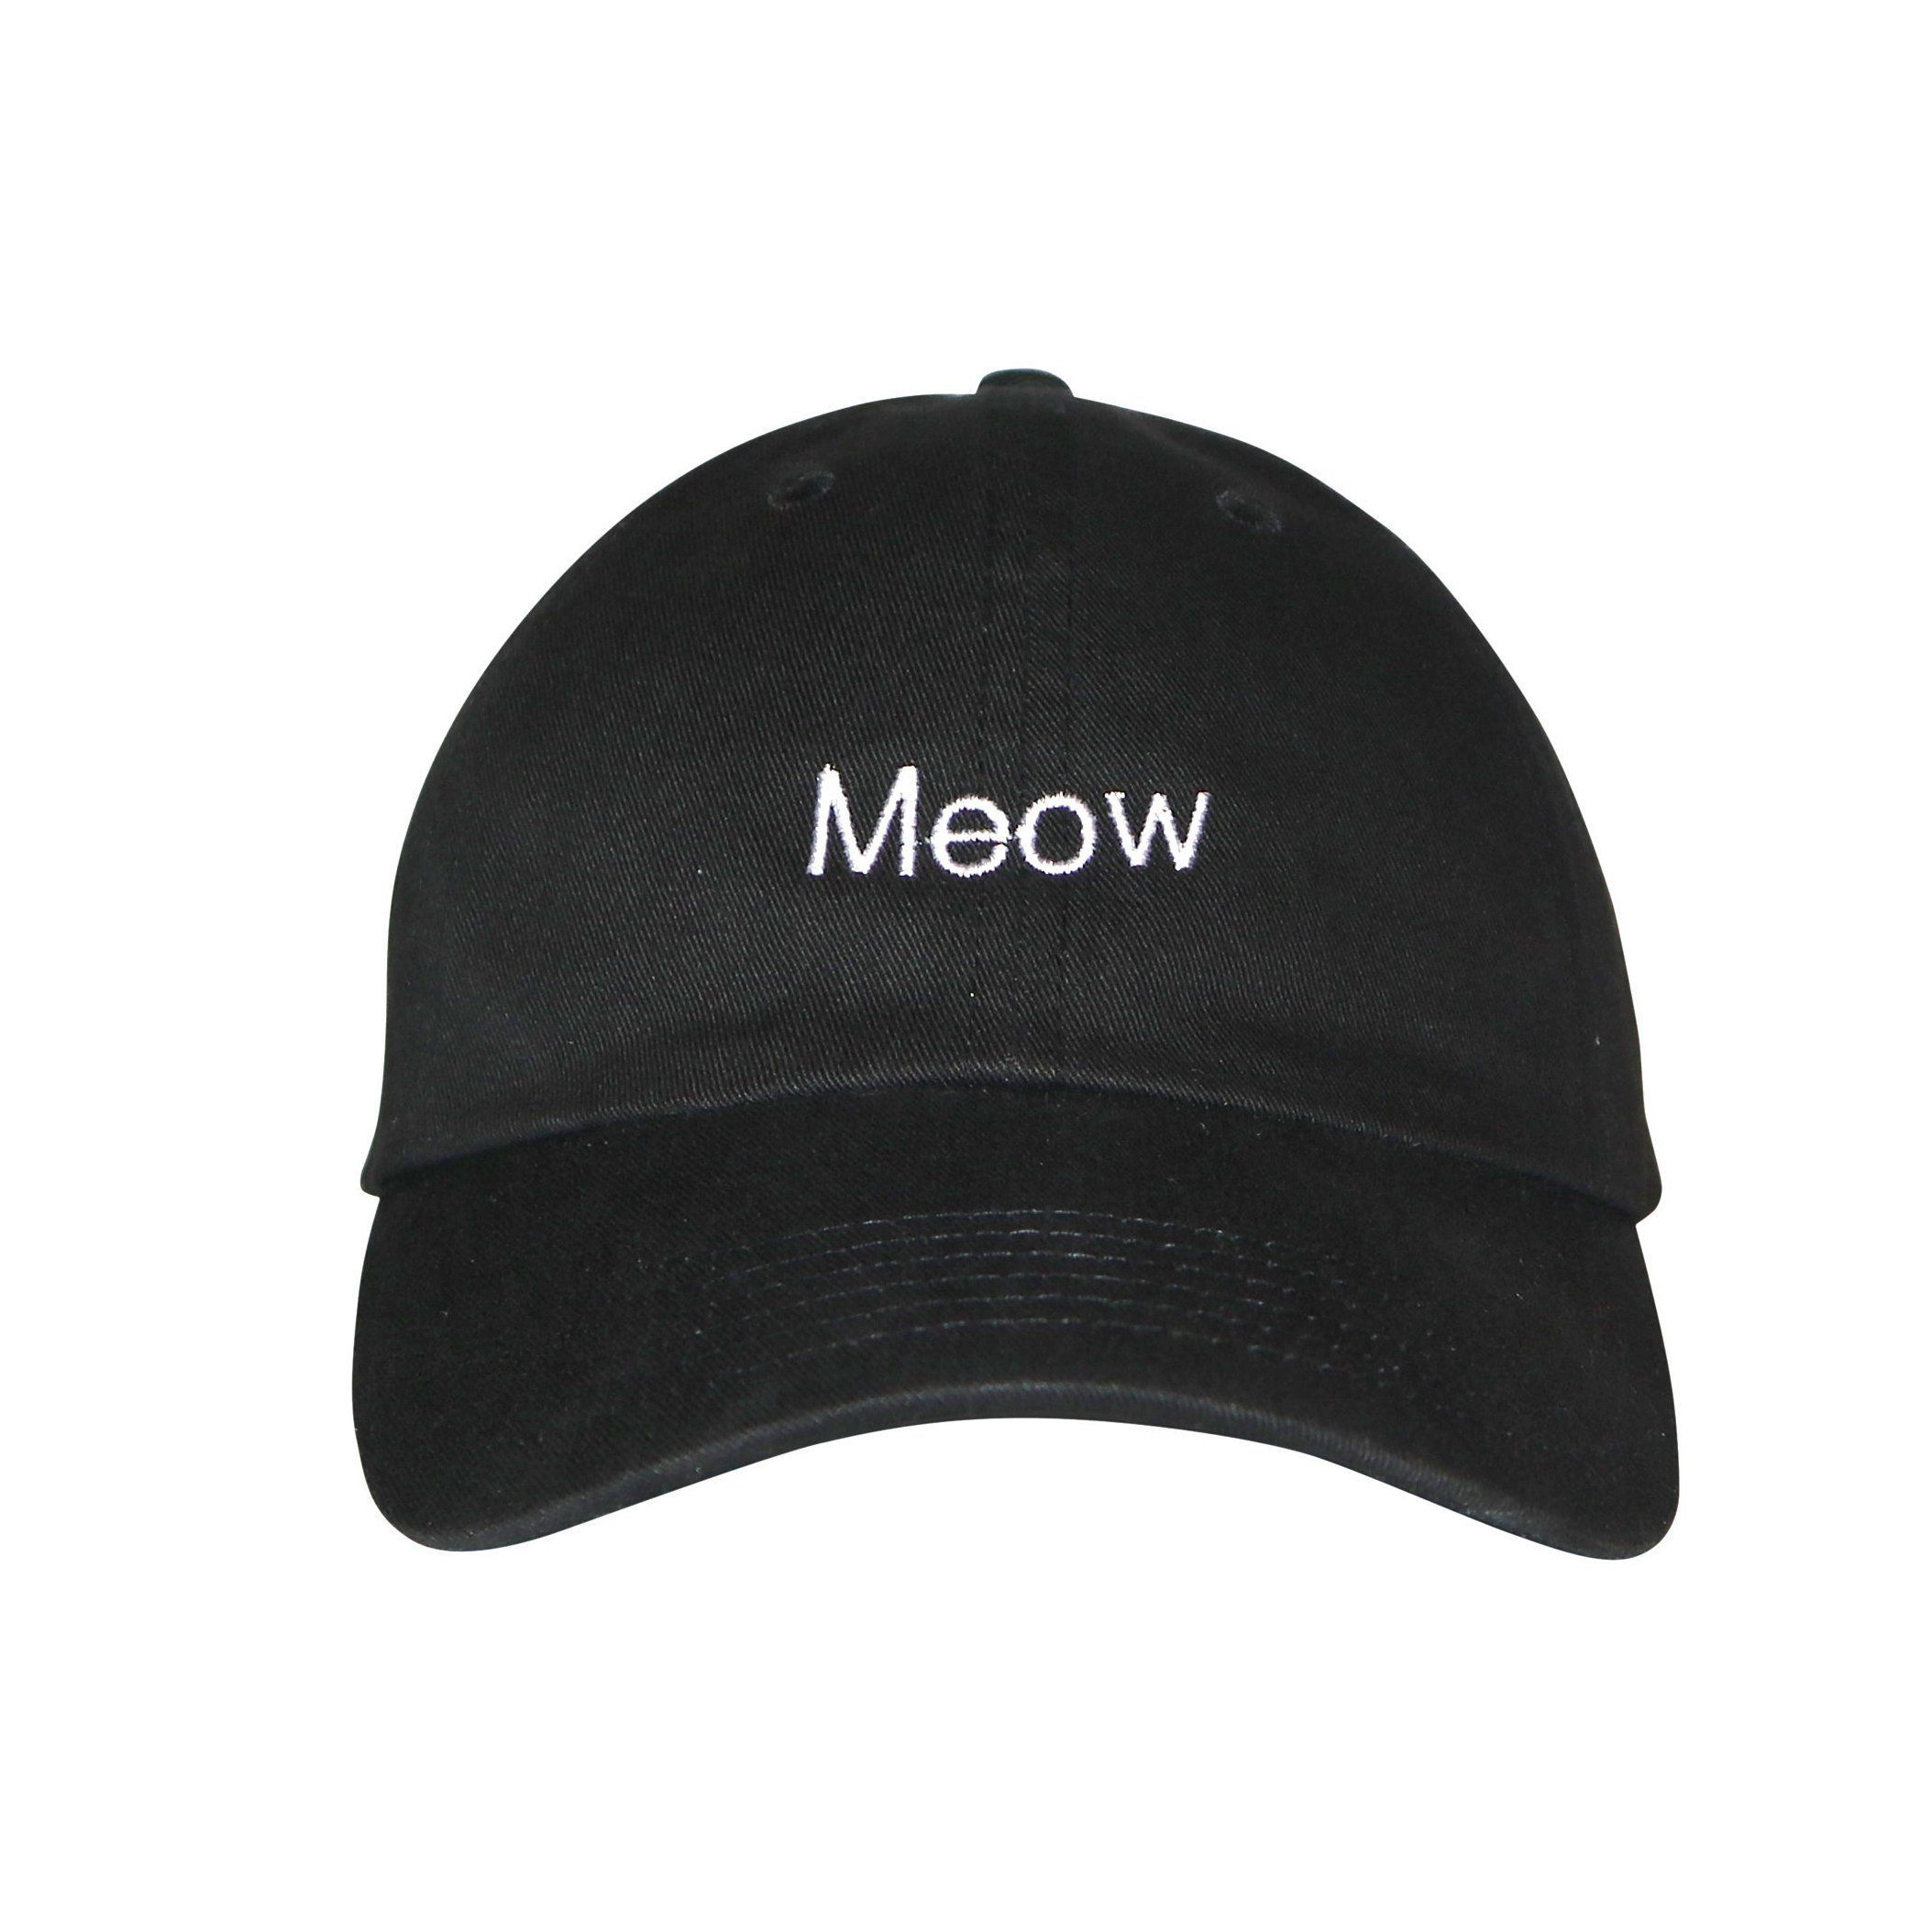 Baseball Cap Adjustable EMBROIDERED Cotton Summer Sun Meow Mens Ladies Hat